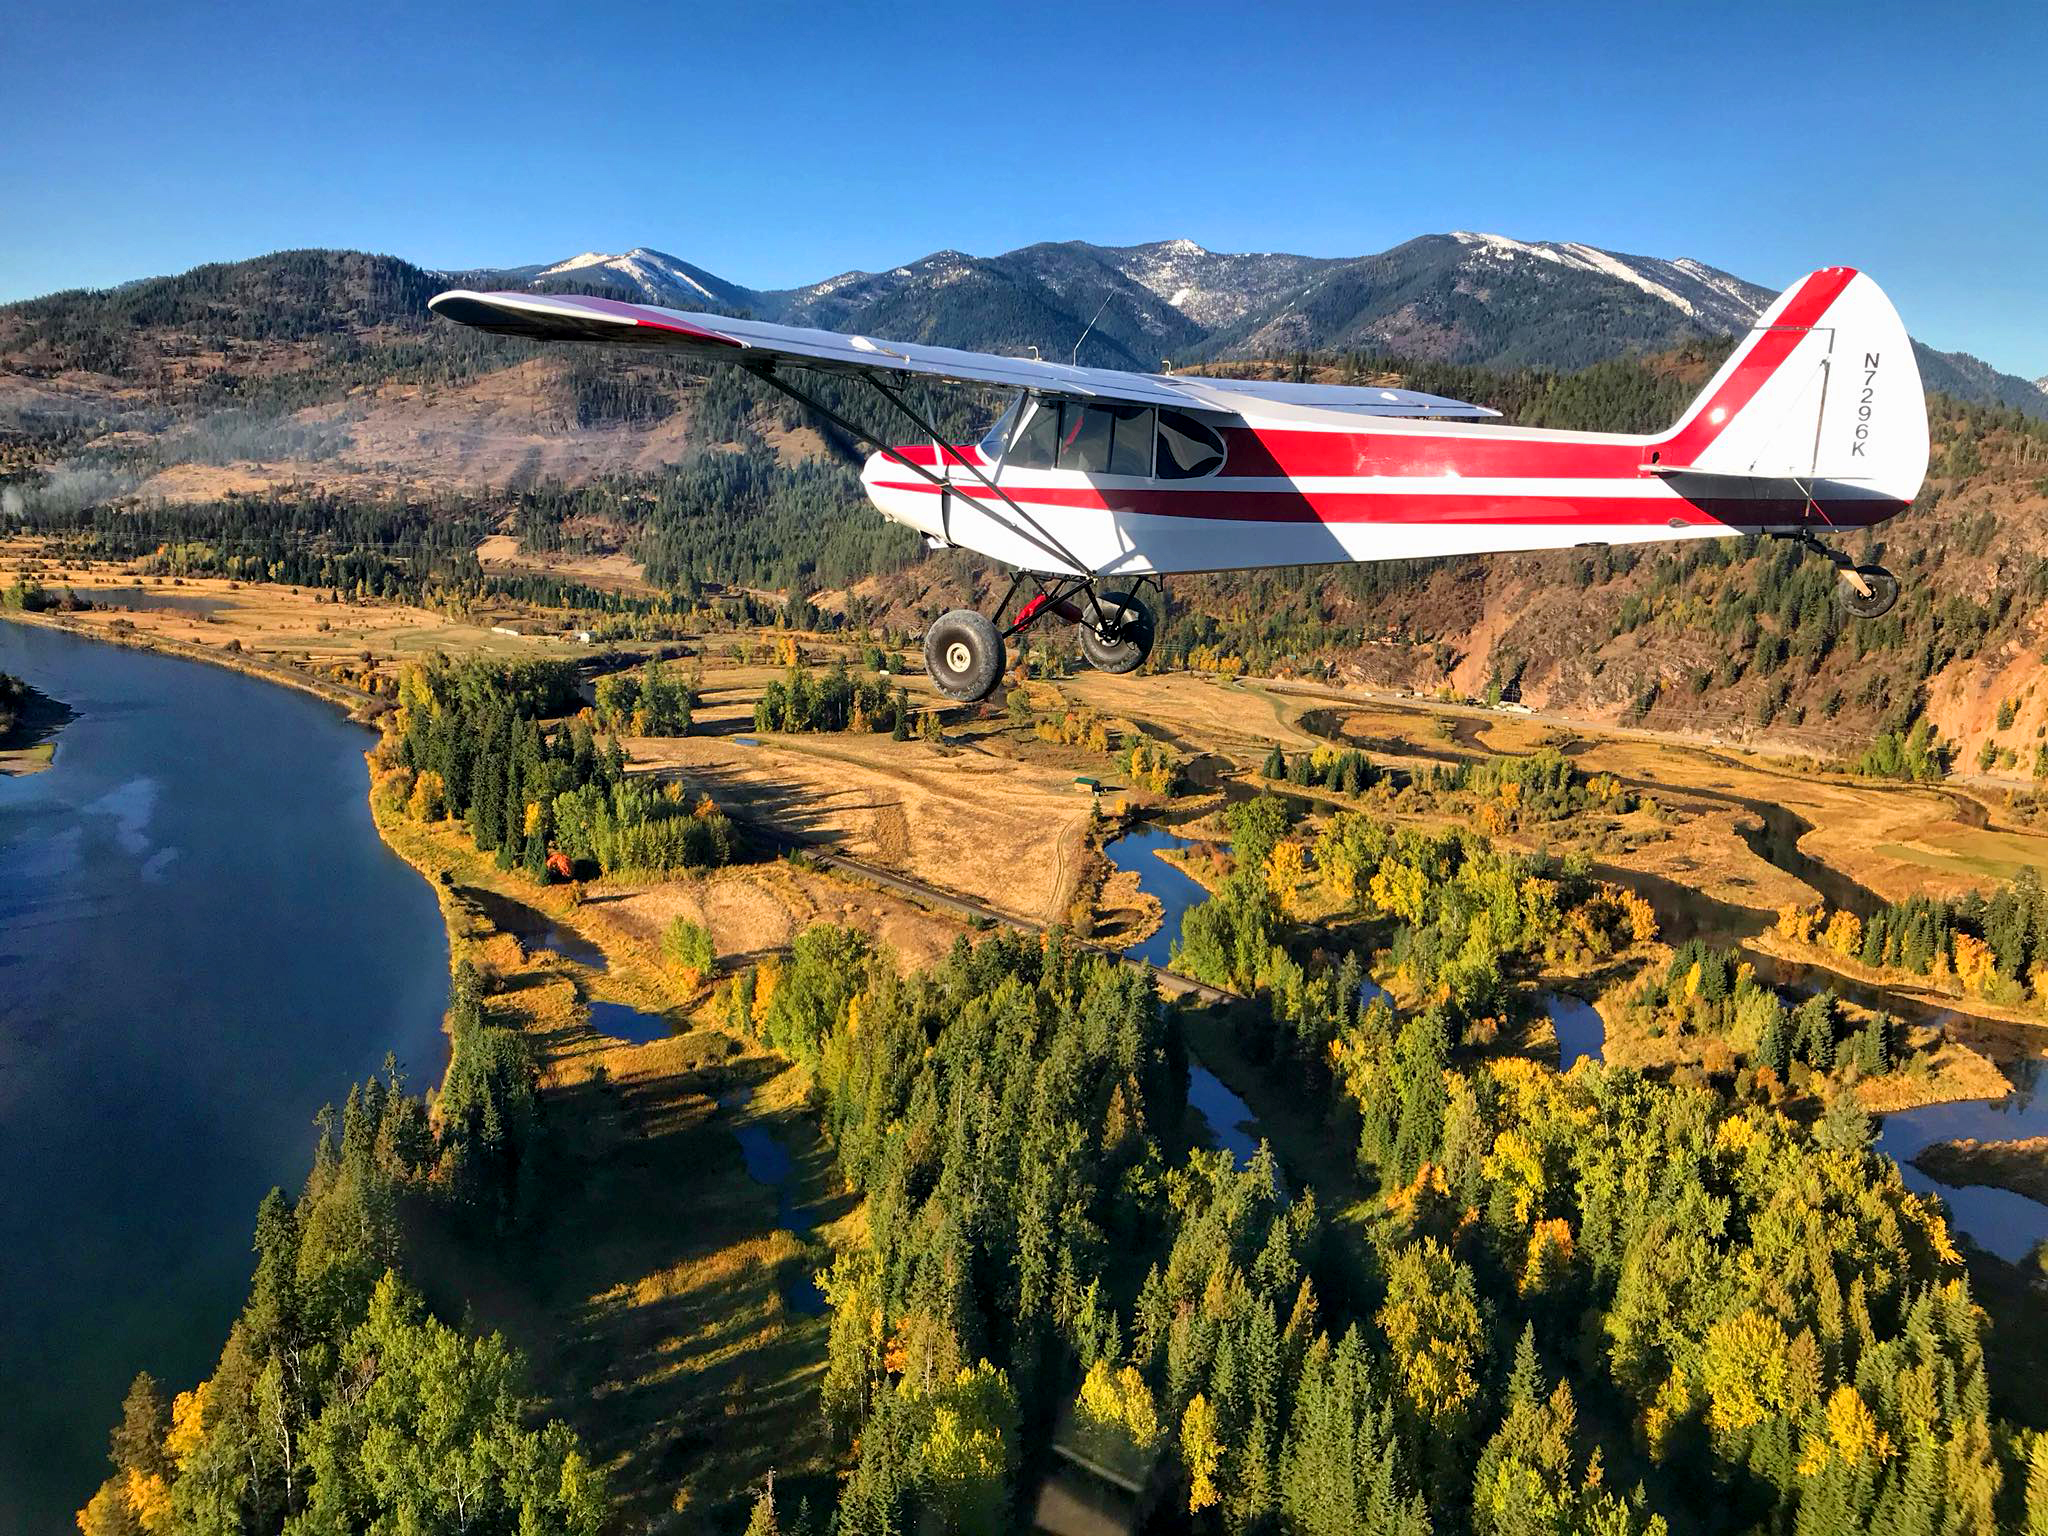 At the easternmost point of Lake Pend Orielle, CFI Lisa Martin heads south over the Clark Fork Delta in her PA18-150 Super Cub. Photo by Amber Phillips.